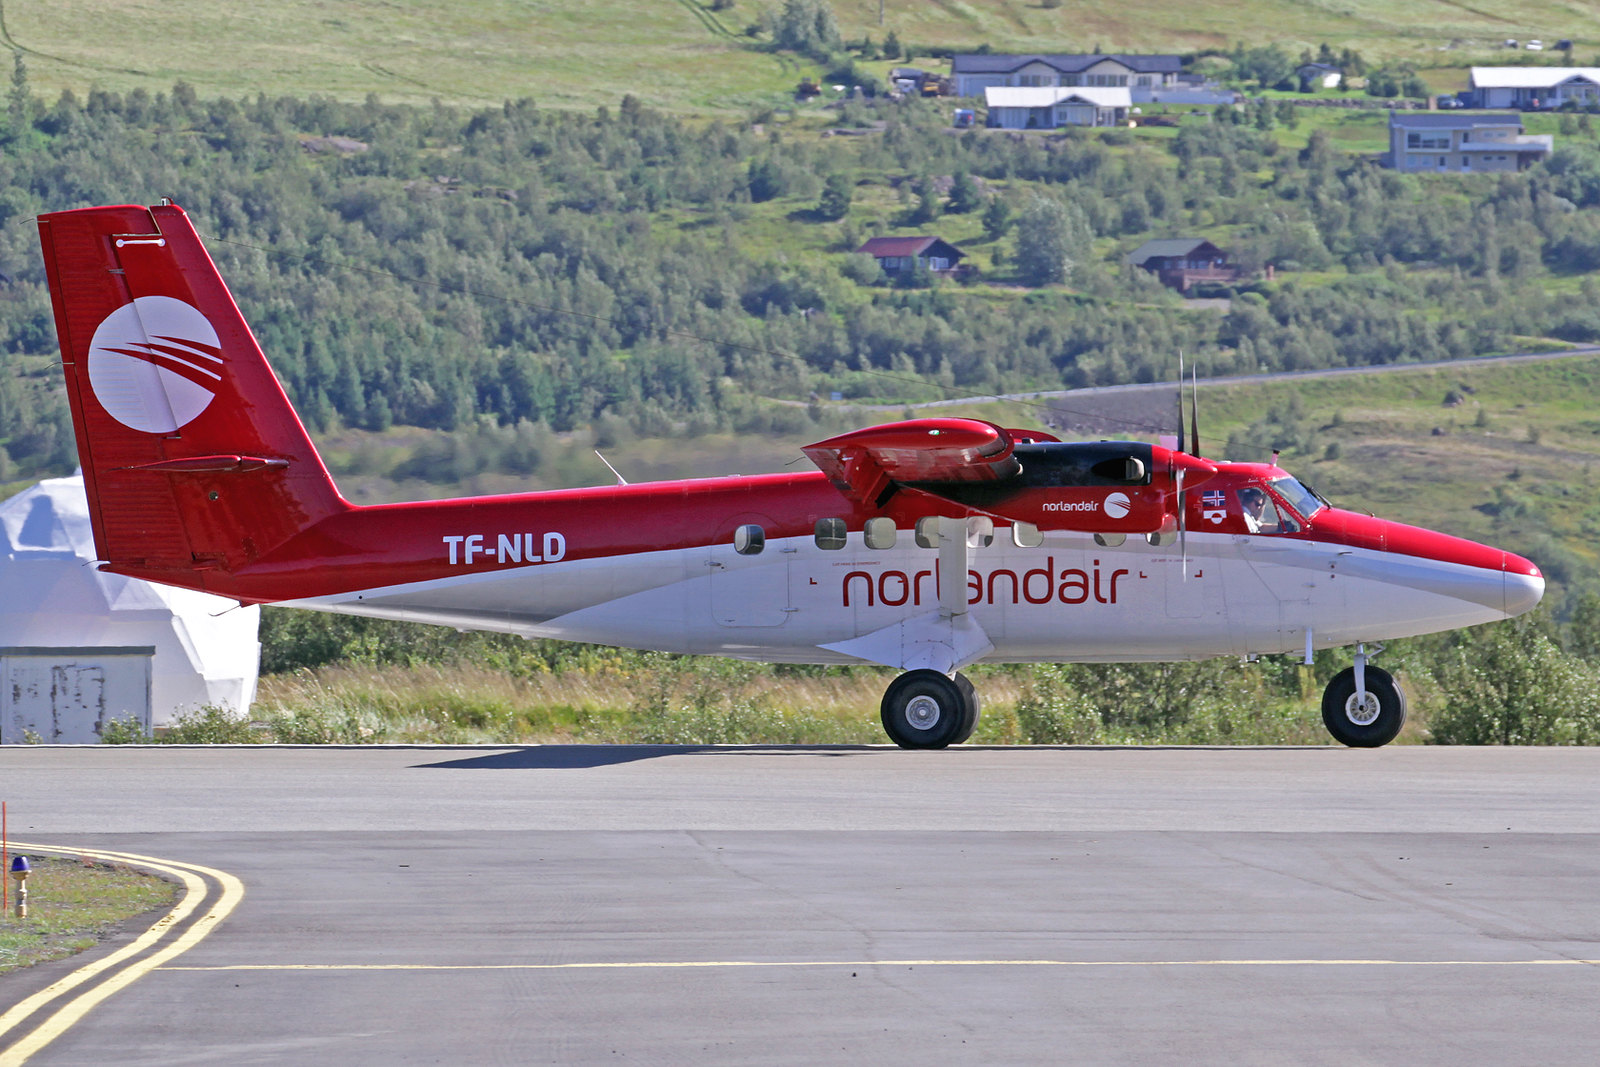 Norlandair DeHavilland DHC-6-300 Twin Otter TF-NLD, AEY, 14. August 2020